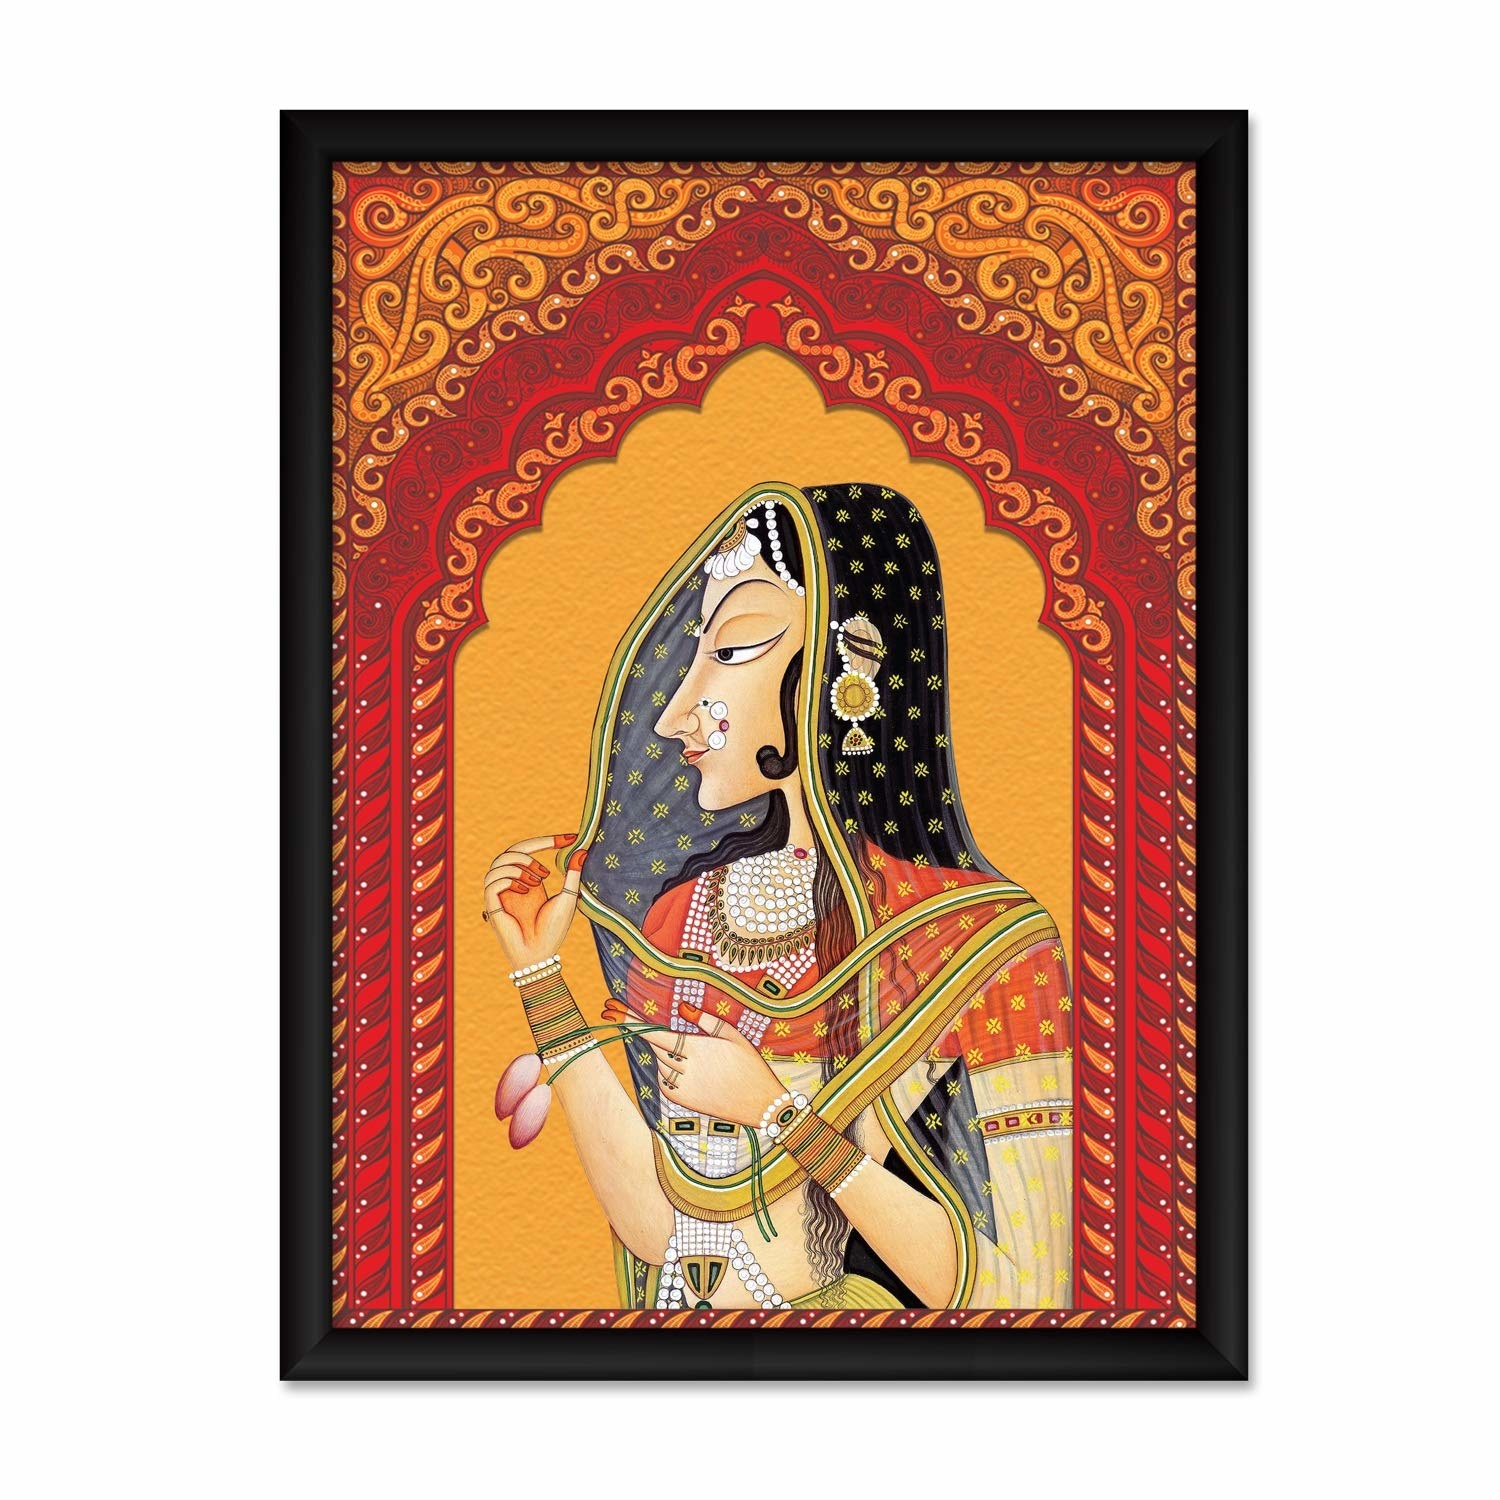 A Rajasthani painting